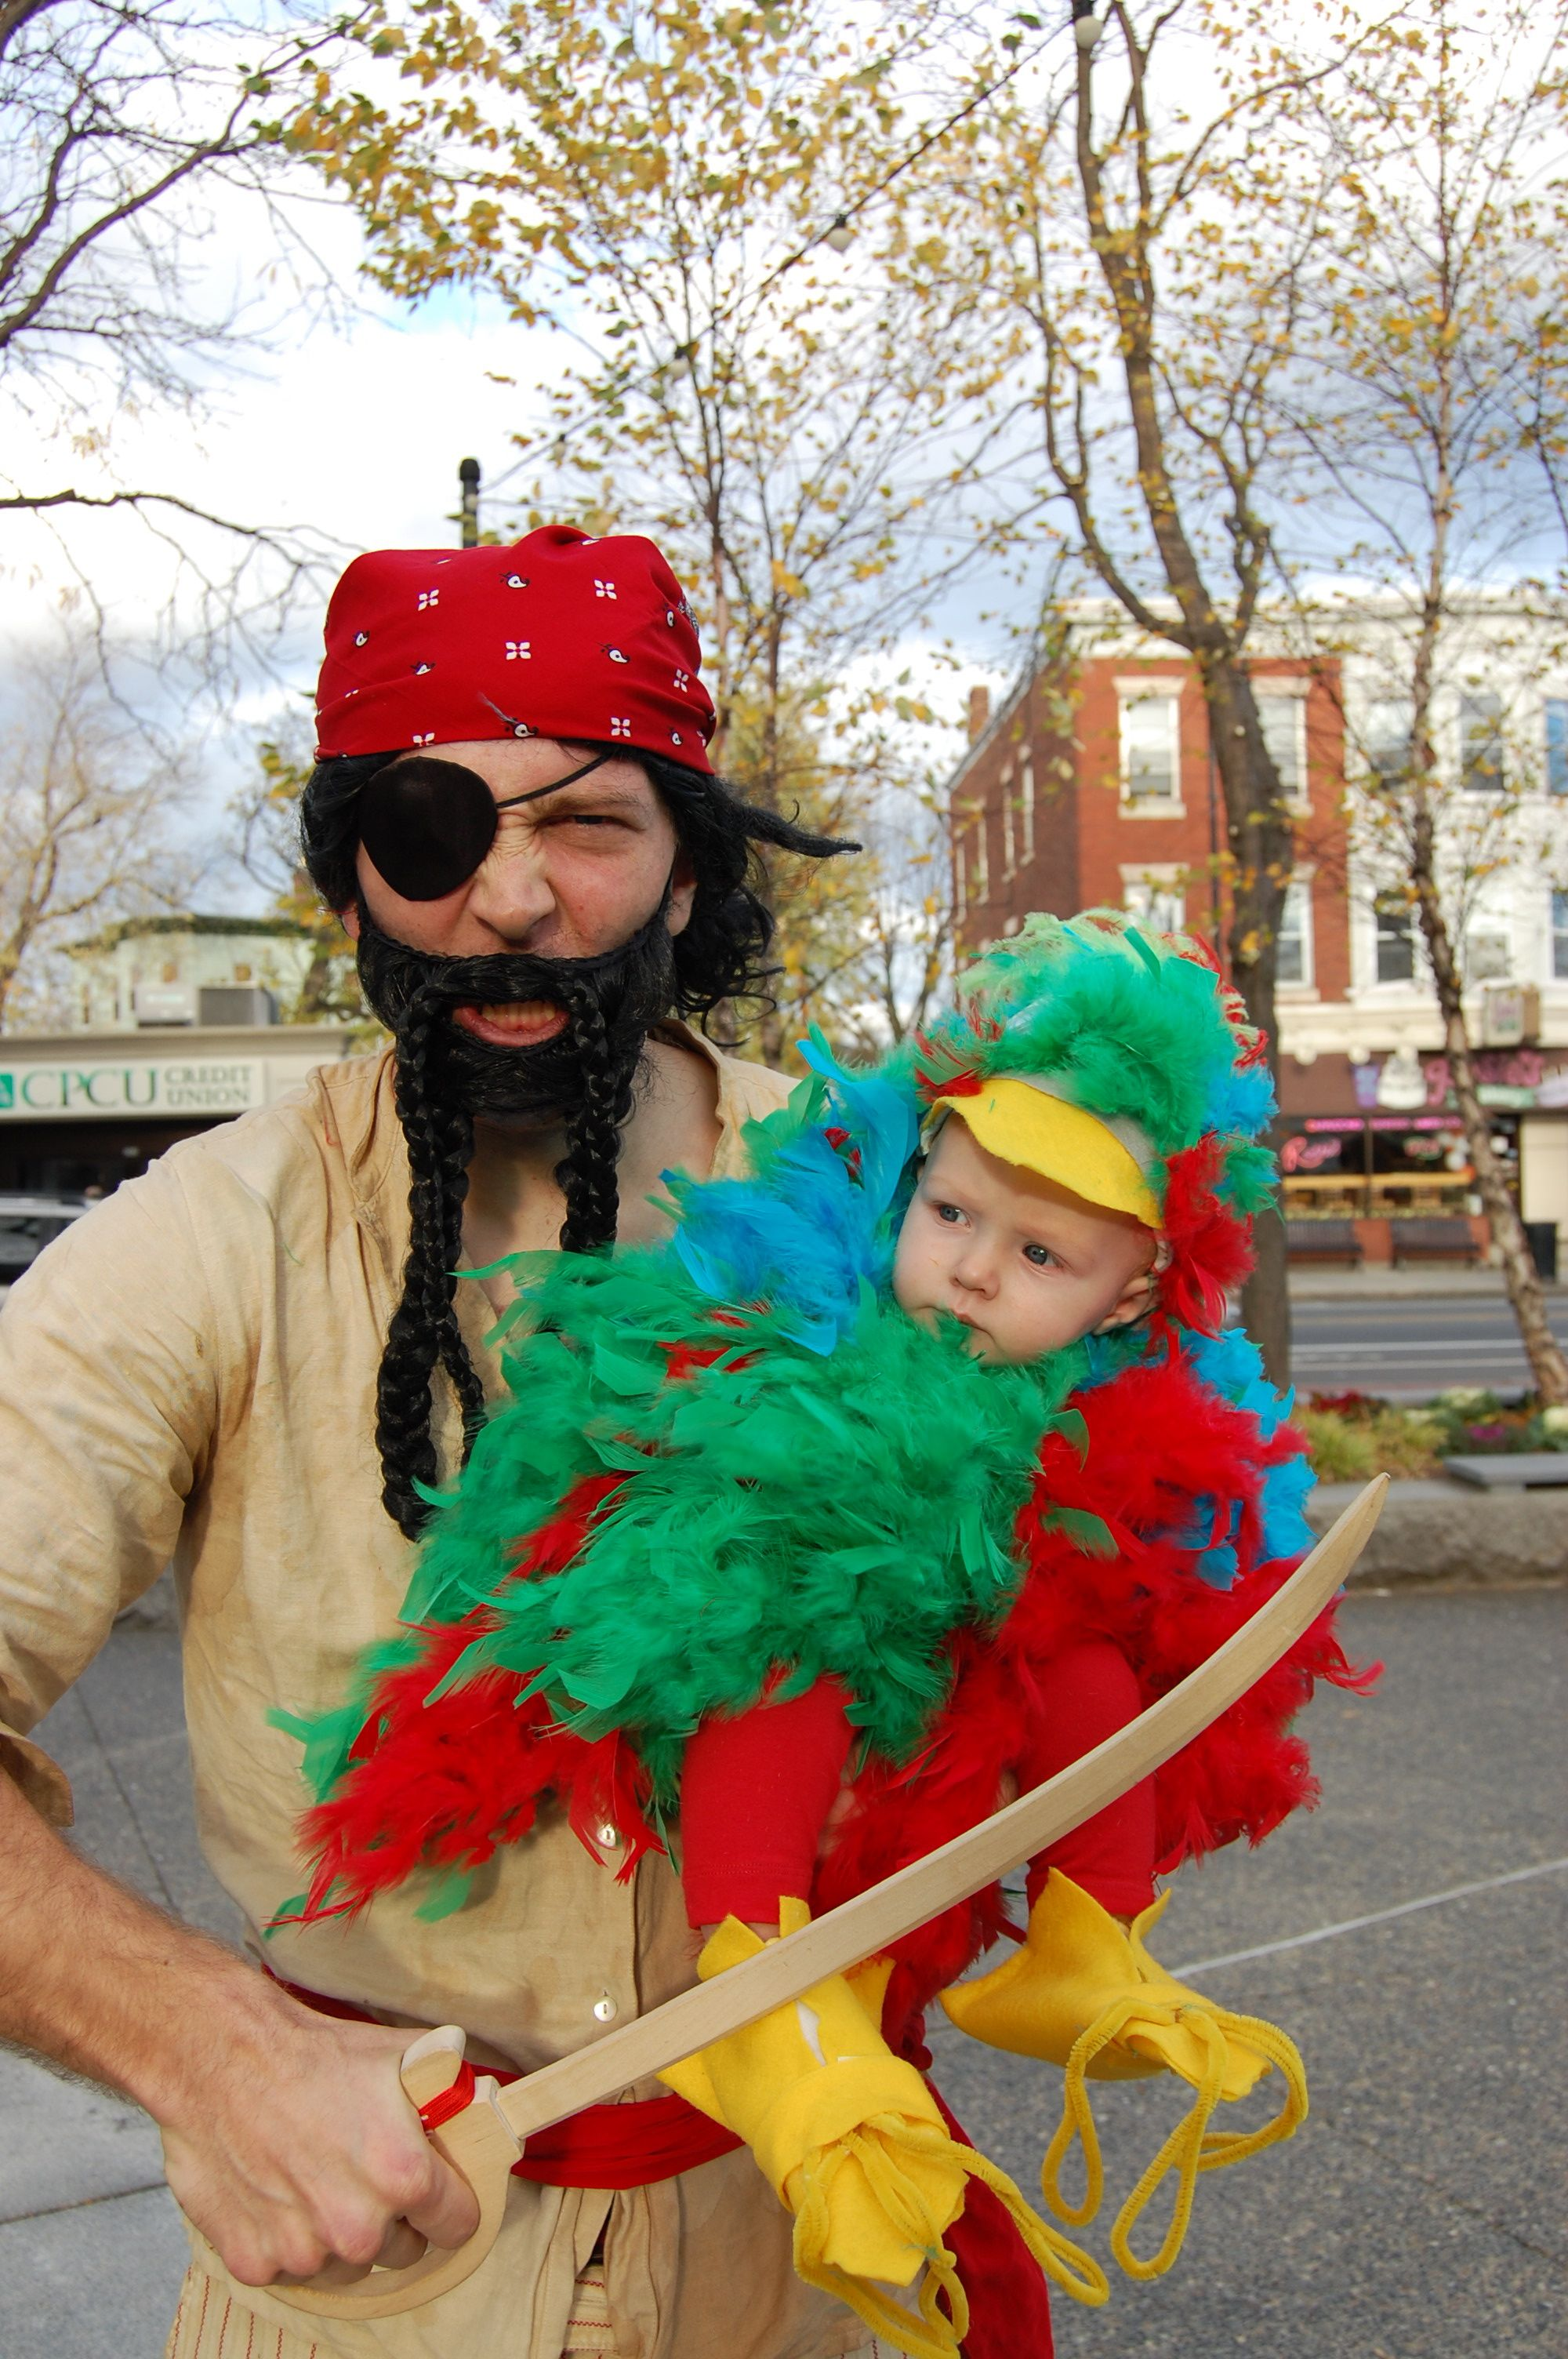 DIY Halloween Costume - Pirate u0026 his parrot  sc 1 st  Pinterest : pirate costume from home  - Germanpascual.Com